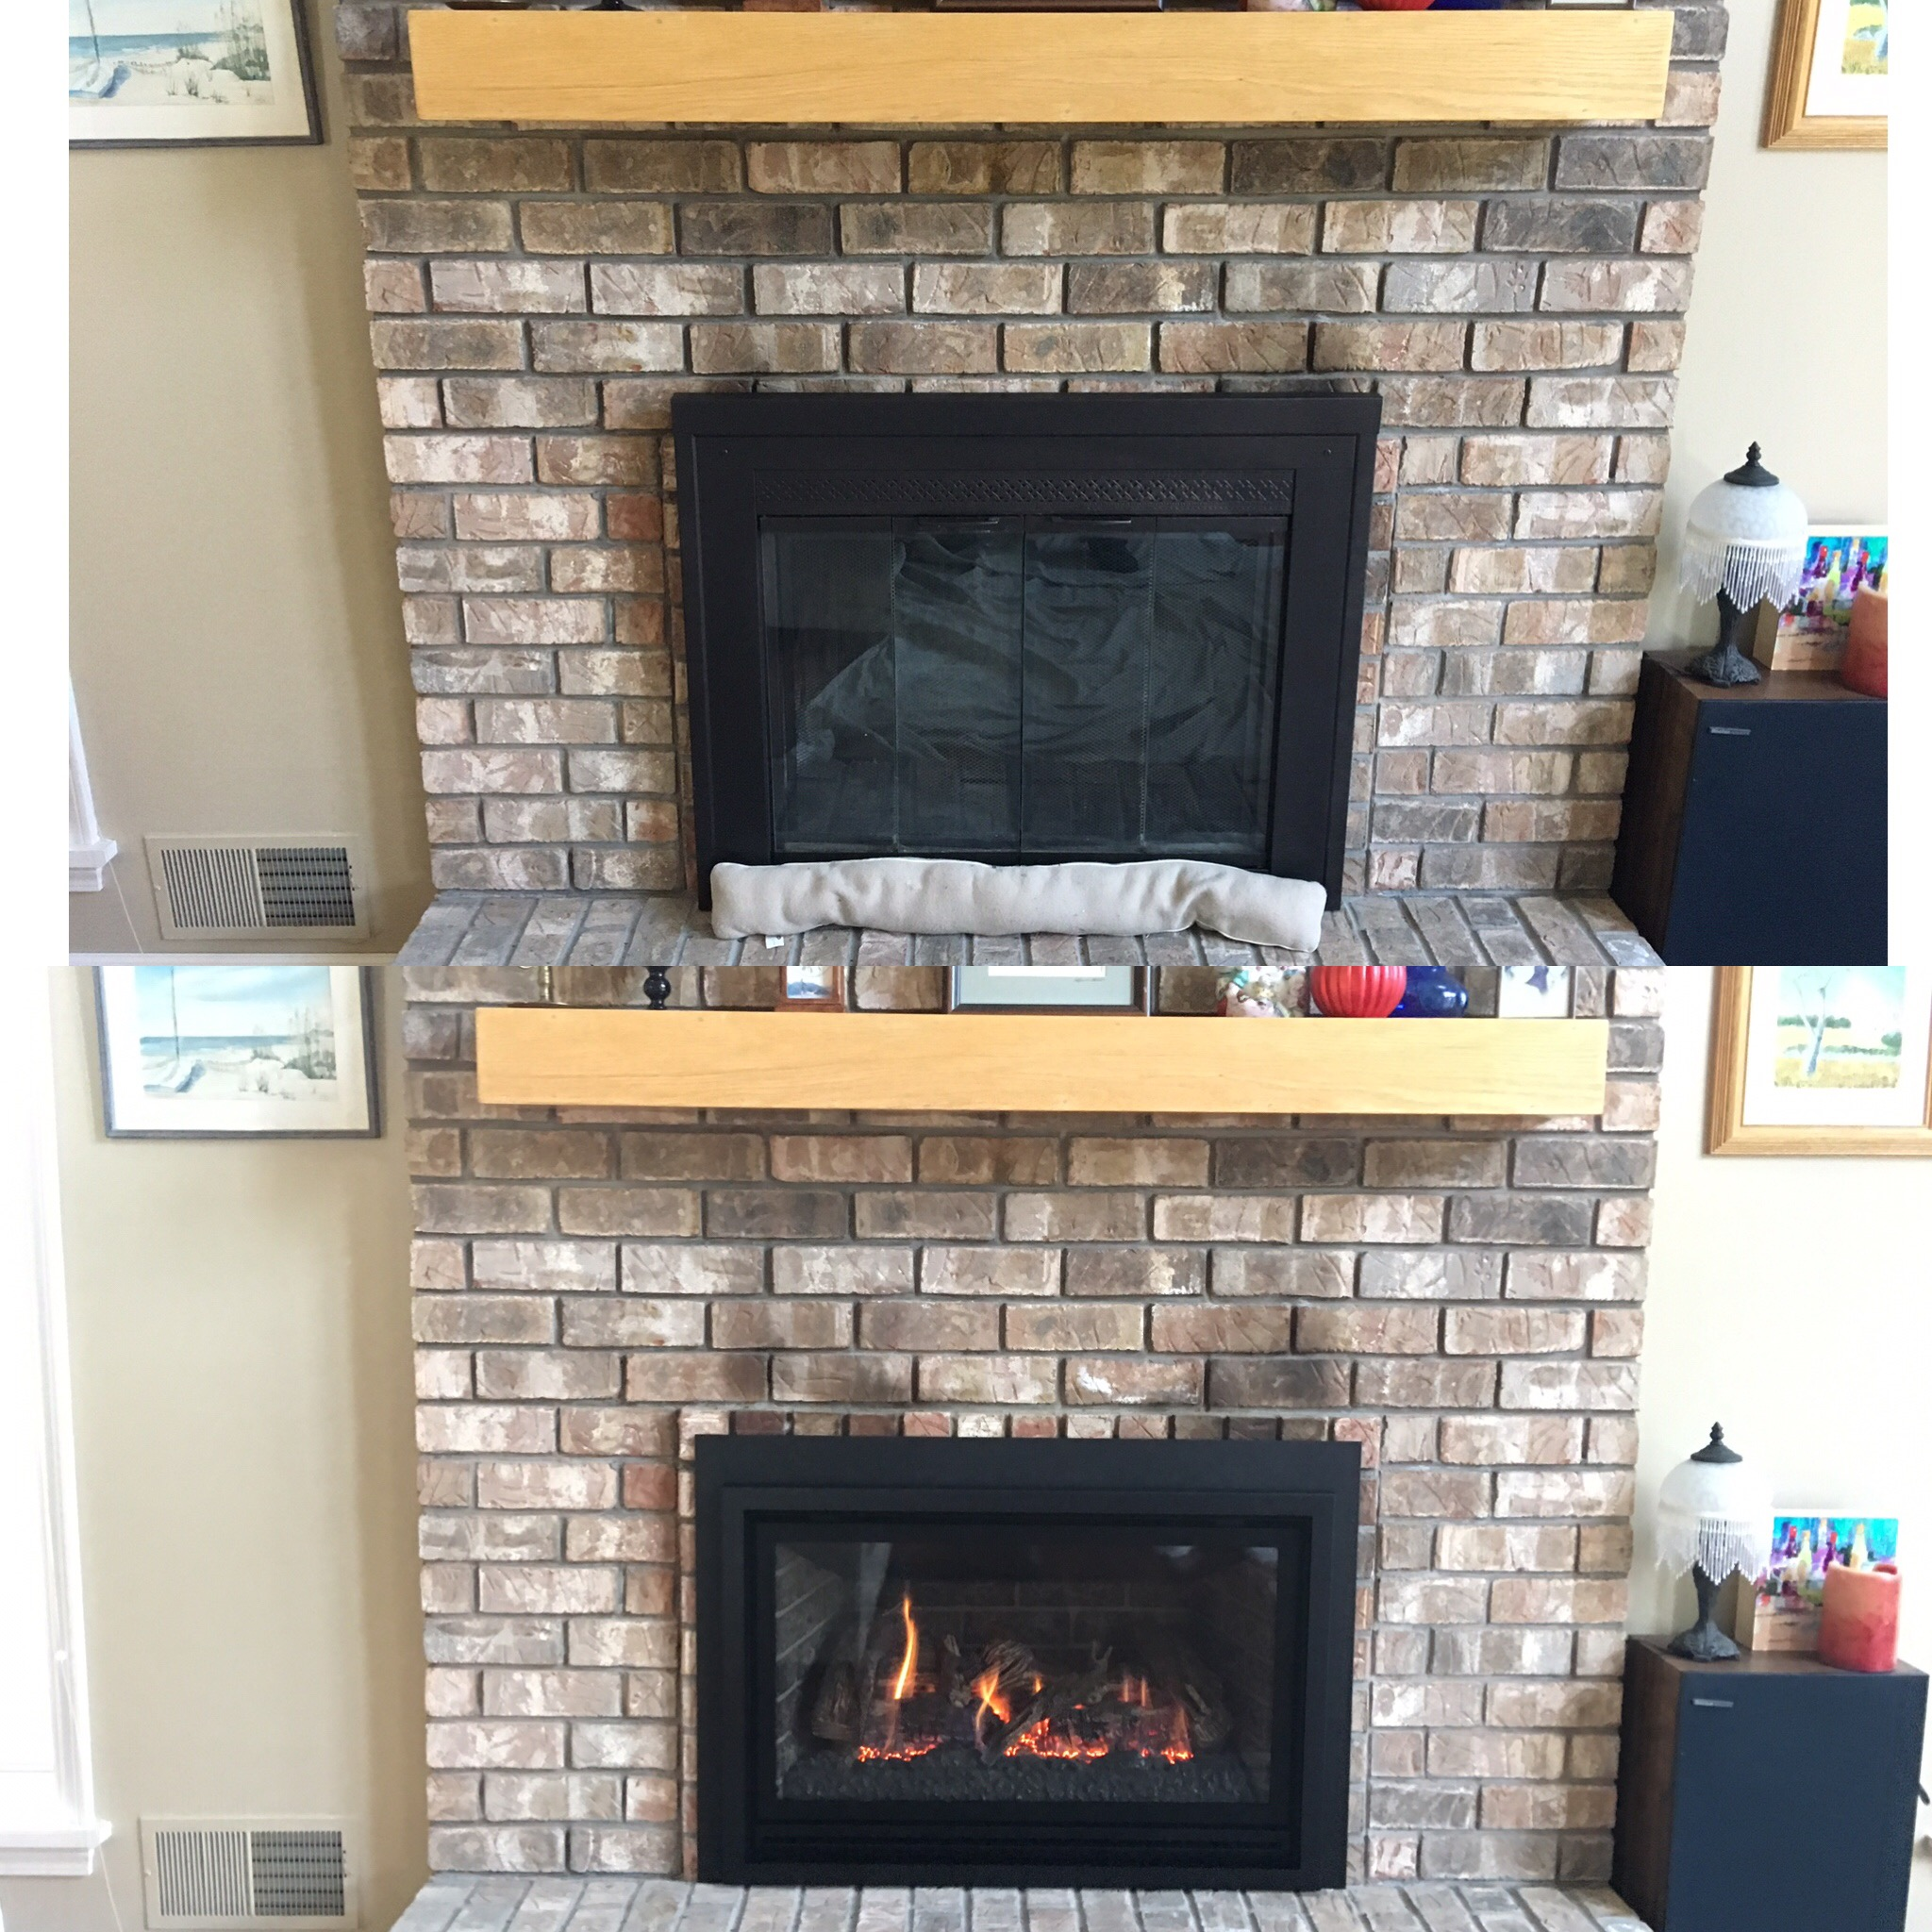 Image of a traditional Chaska 335s by Kozy Heat and the preexisting masonry fireplace as the before.